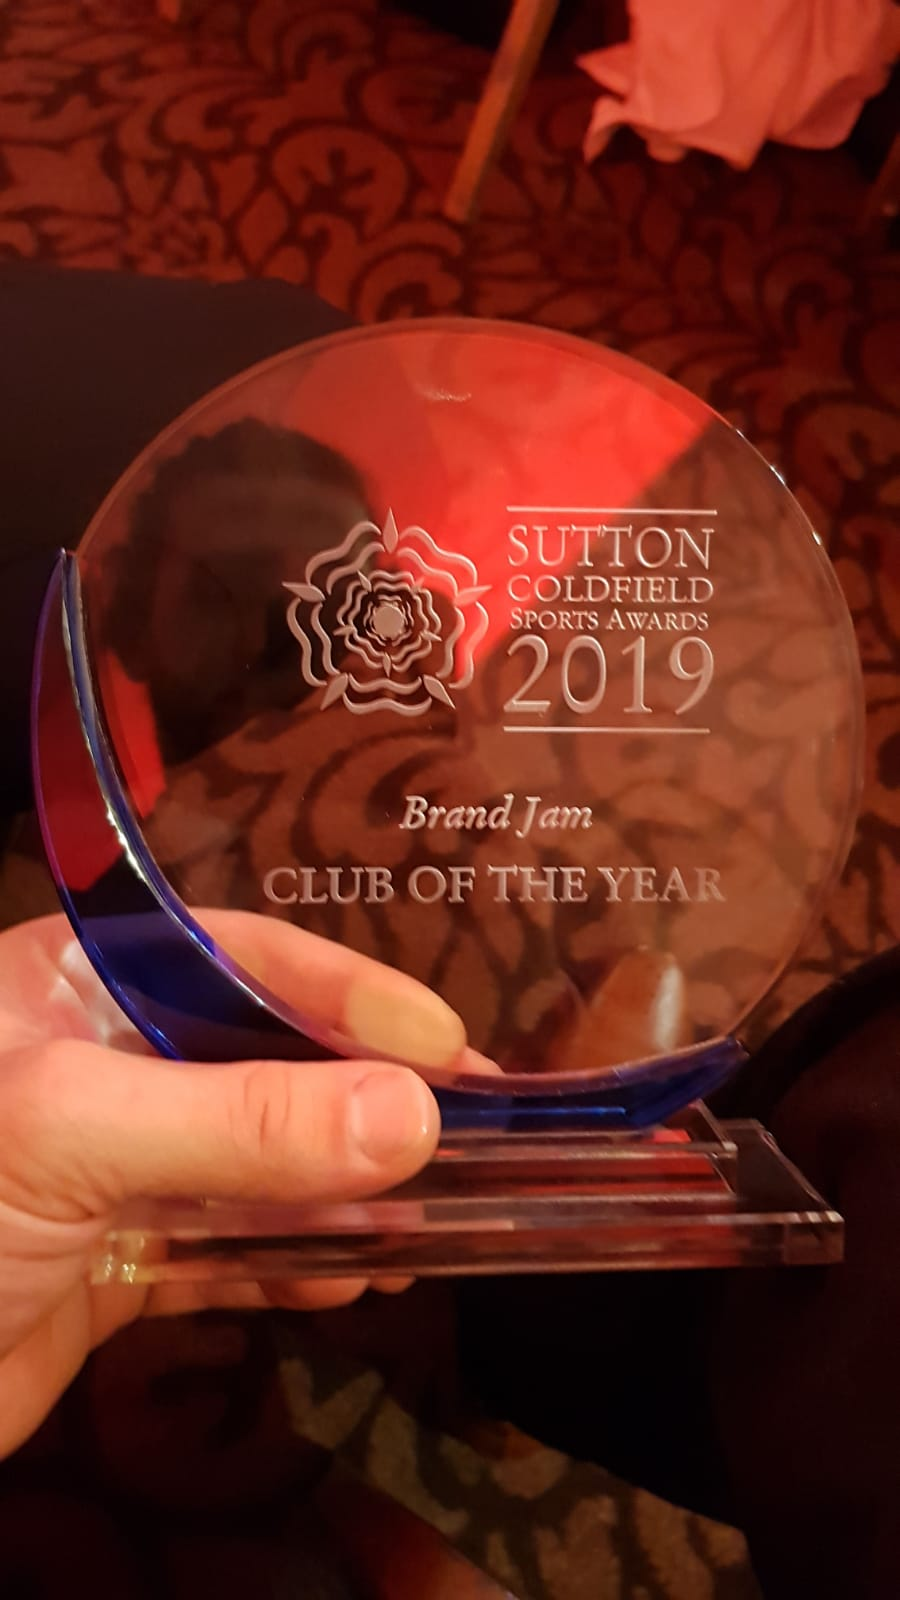 Sutton Coldfield Sports Awards Club of the Year!